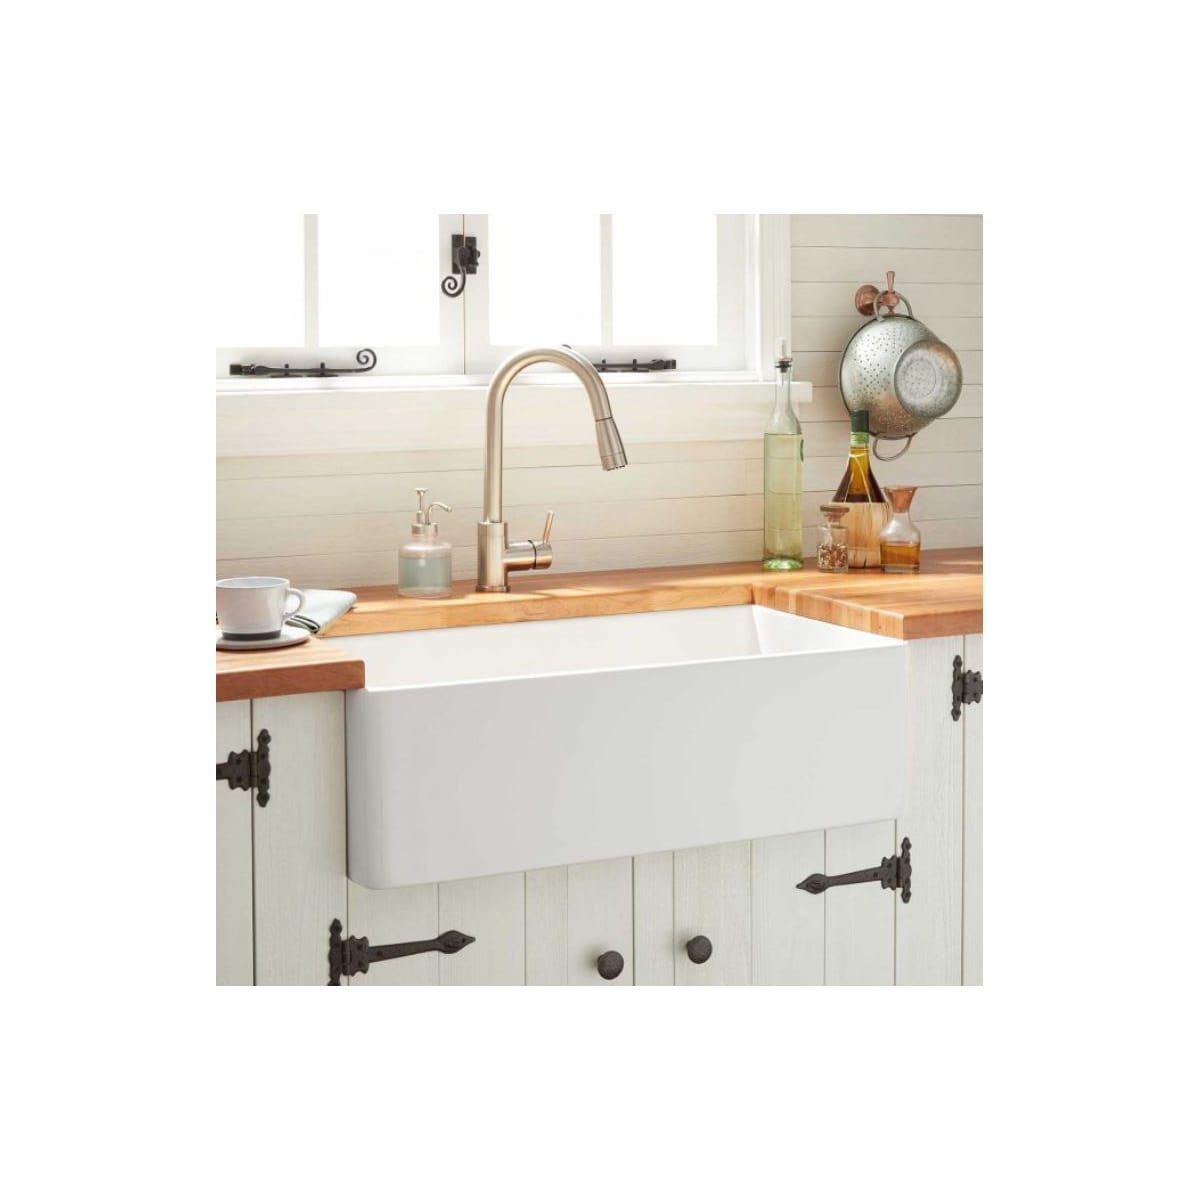 Reinhard Signature Hardware fireclay farm sink.